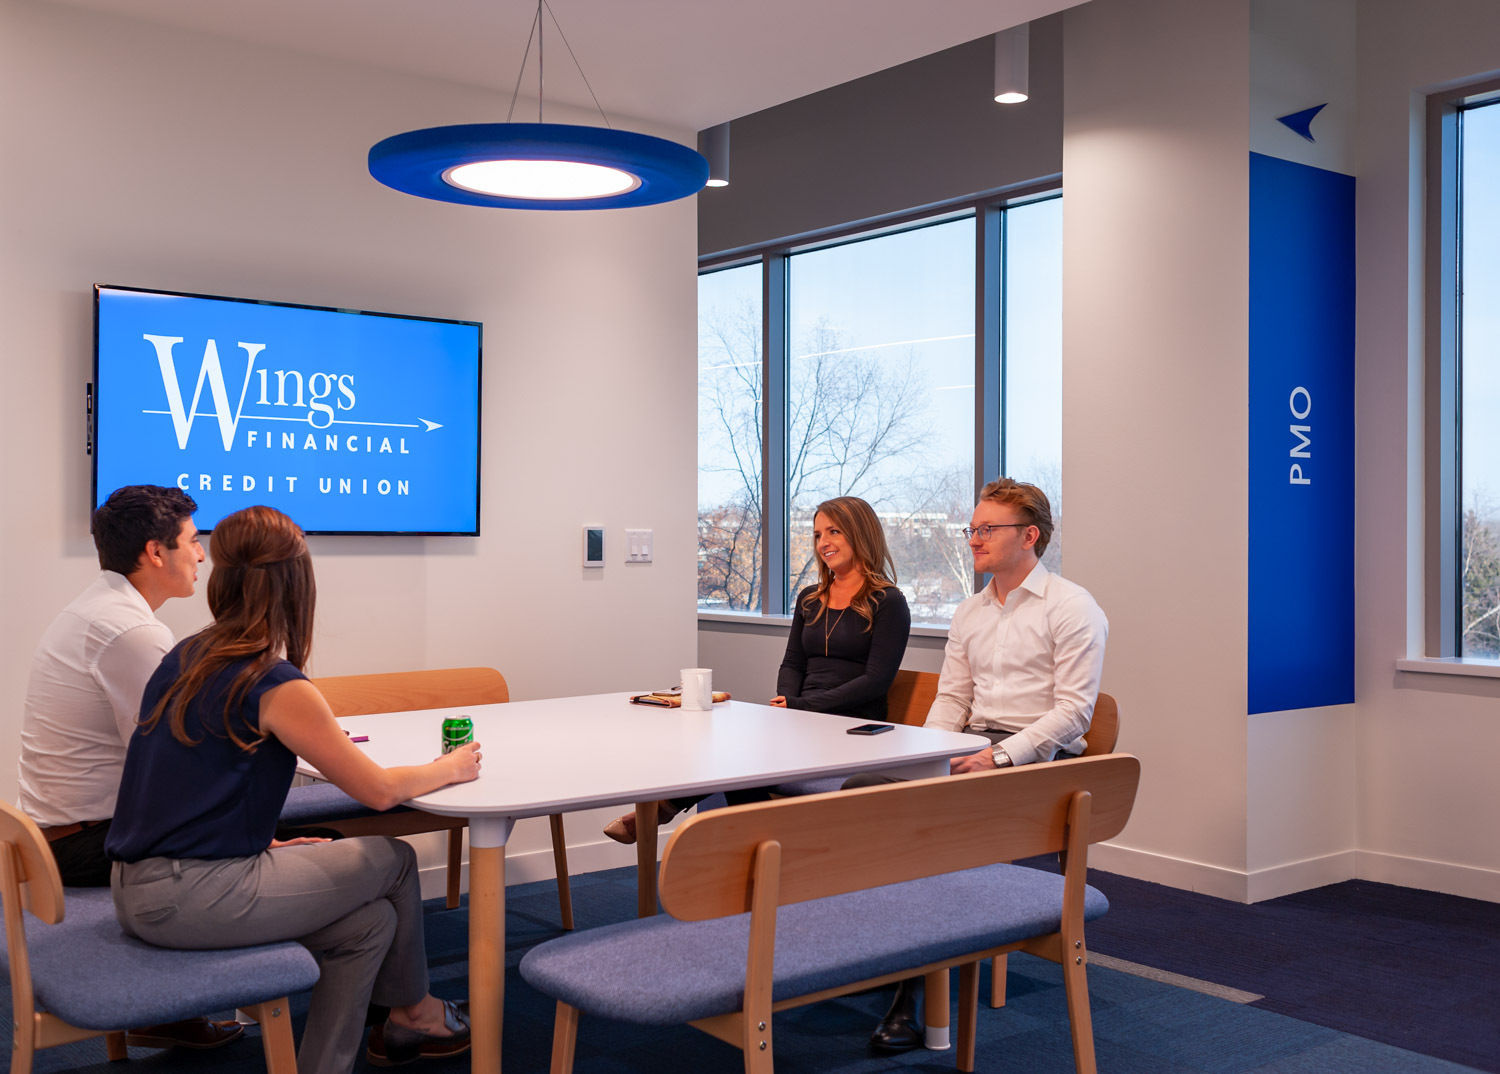 """The focus on flexibility–and employee choice and control–ensured that all 85 dedicated workstations would allow for ergonomic adjustability with height adjustable desks, dual monitor arms and the user friendly Nuovo Contessa task chair from Teknion. Collaboration would now take place in the dedicated workstations or in a variety of styled and sized, open and enclosed meeting rooms. With 2.4 seats per person on the floor, work postures and options are substantial.  Technology upgrades assured that each enabled location operated similarly, minimizing training and troubleshooting setbacks. Utilizing AirMedia to share content wirelessly and Video-Over-IP solutions to link all shared televisions, the opportunity to connect throughout the workplace skyrocketed. Schuenke continues, """"Everyone has laptops and the floor is fully Wi-Fi enabled. The environment fully supports their choice to work anywhere."""""""